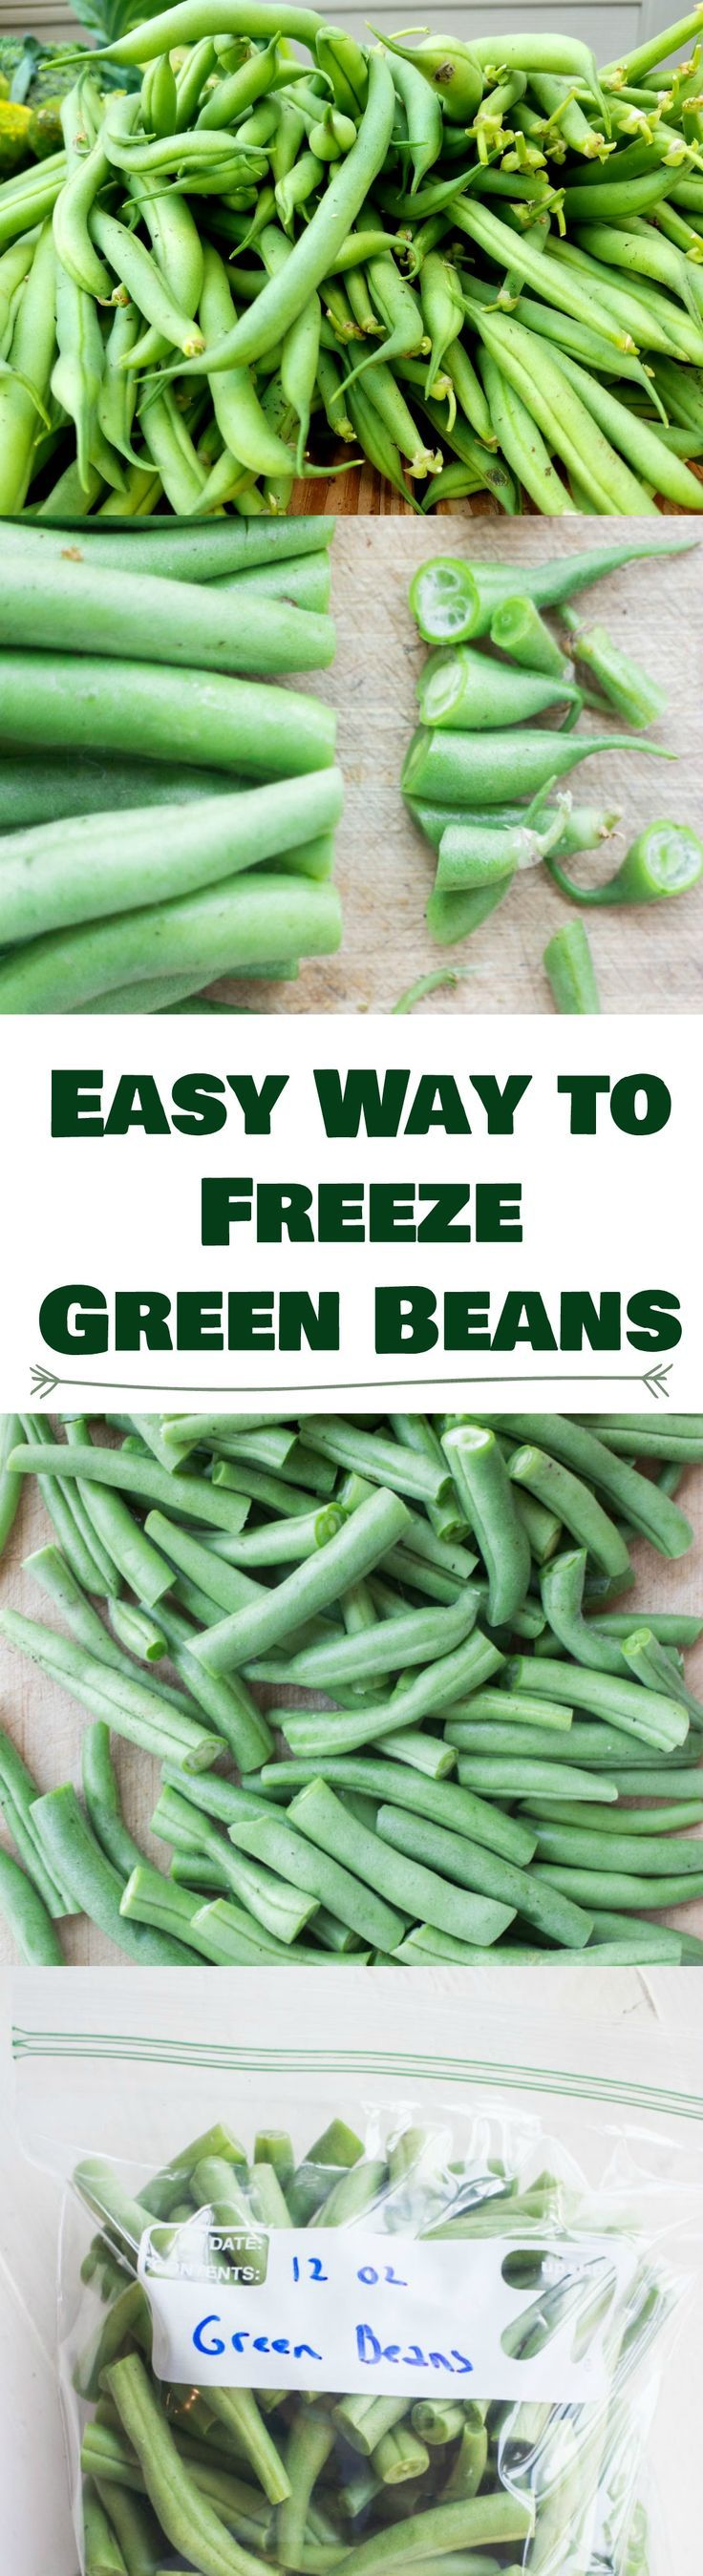 Easy step by step instructions on how to freeze green beans without blanching. These green beans will last up to a year.